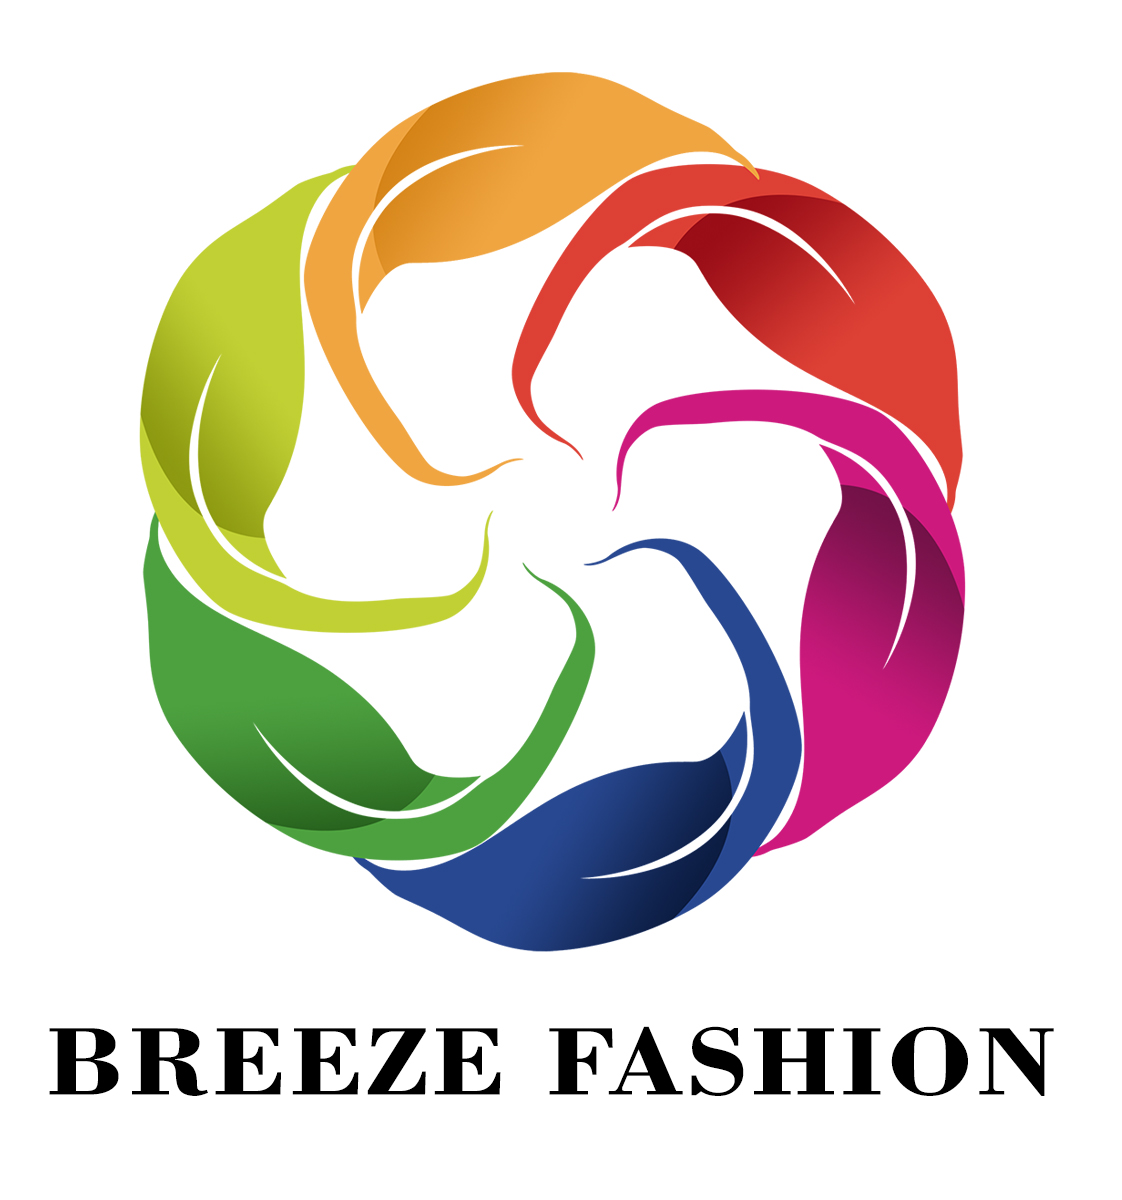 Breeze fashion co.,ltd- The leader of scarf supplier